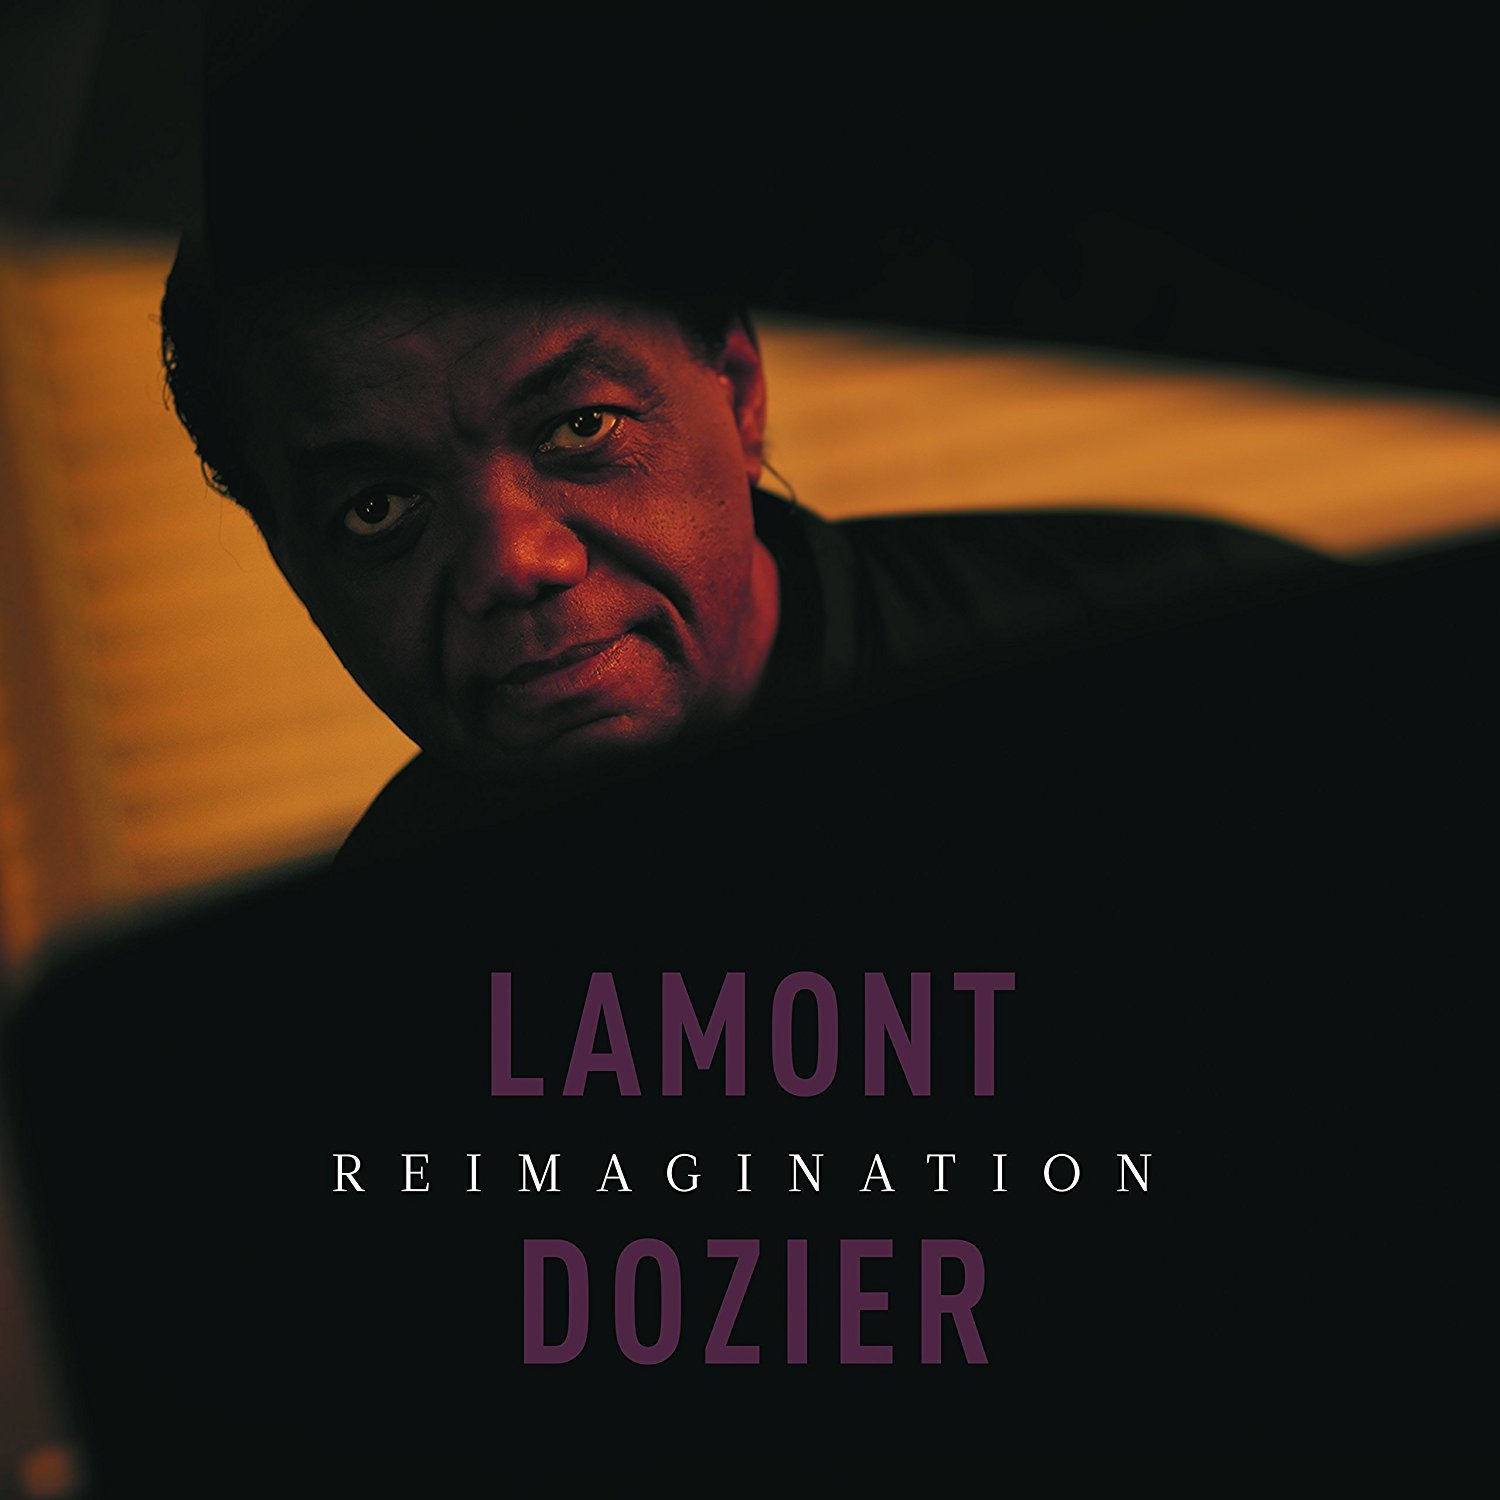 Lamont Dozier album with Cliff Richard duet